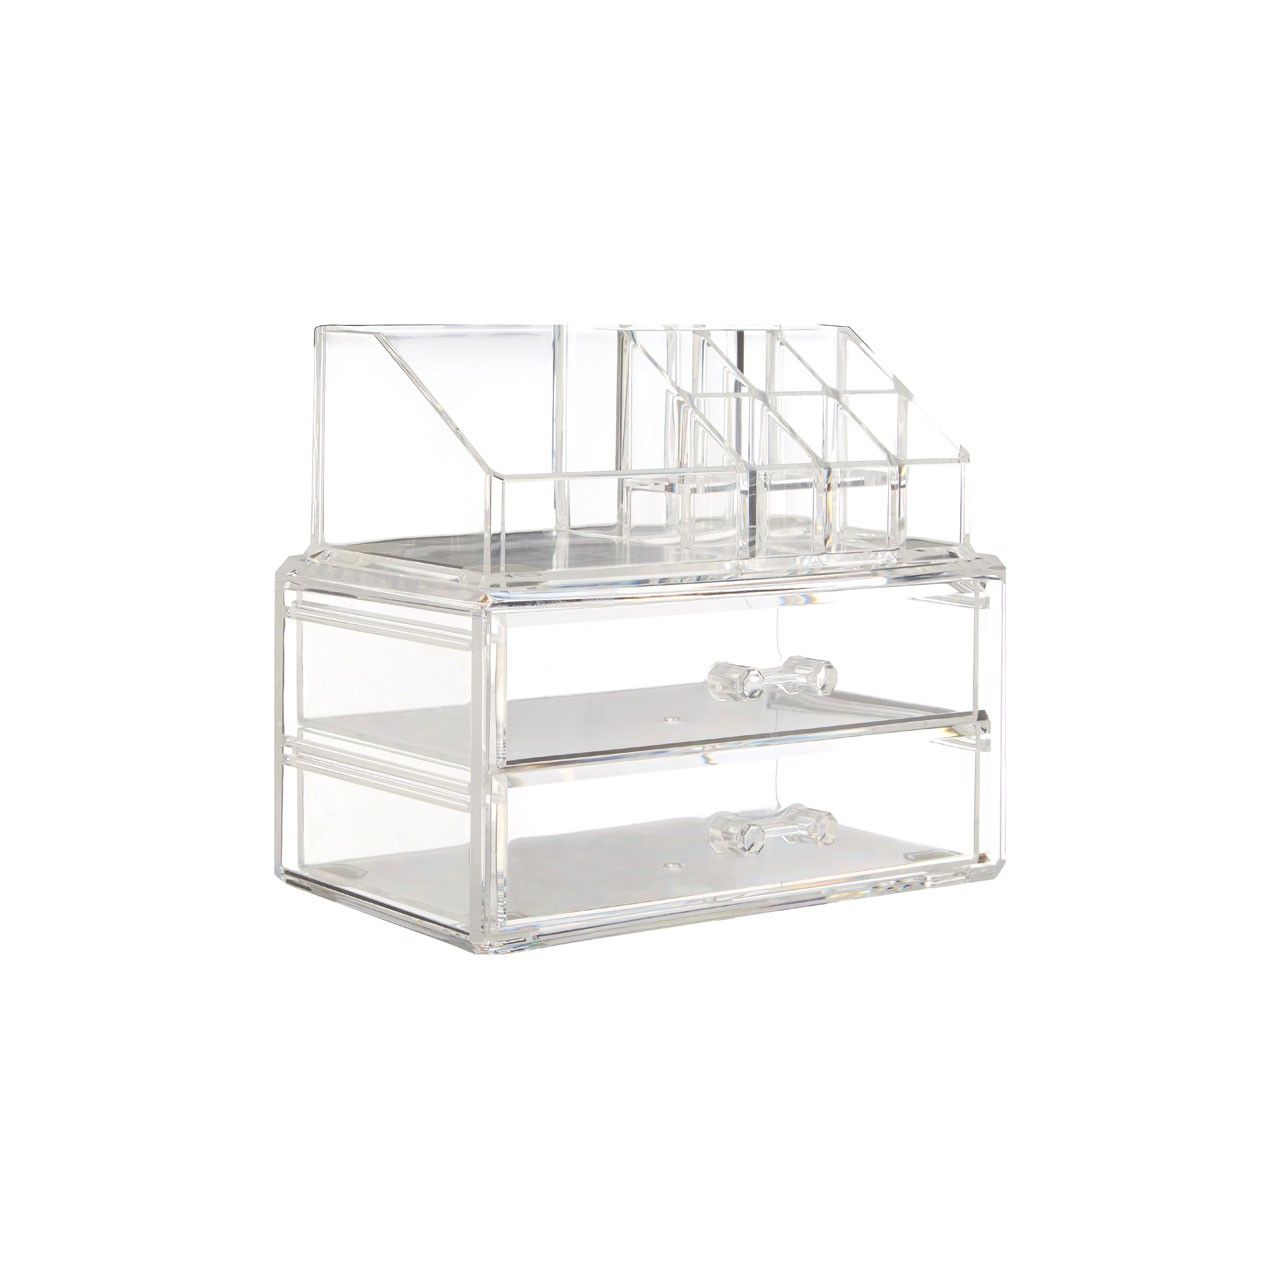 Prime Furnishing 10 Compartment Cosmetics Organiser - Clear